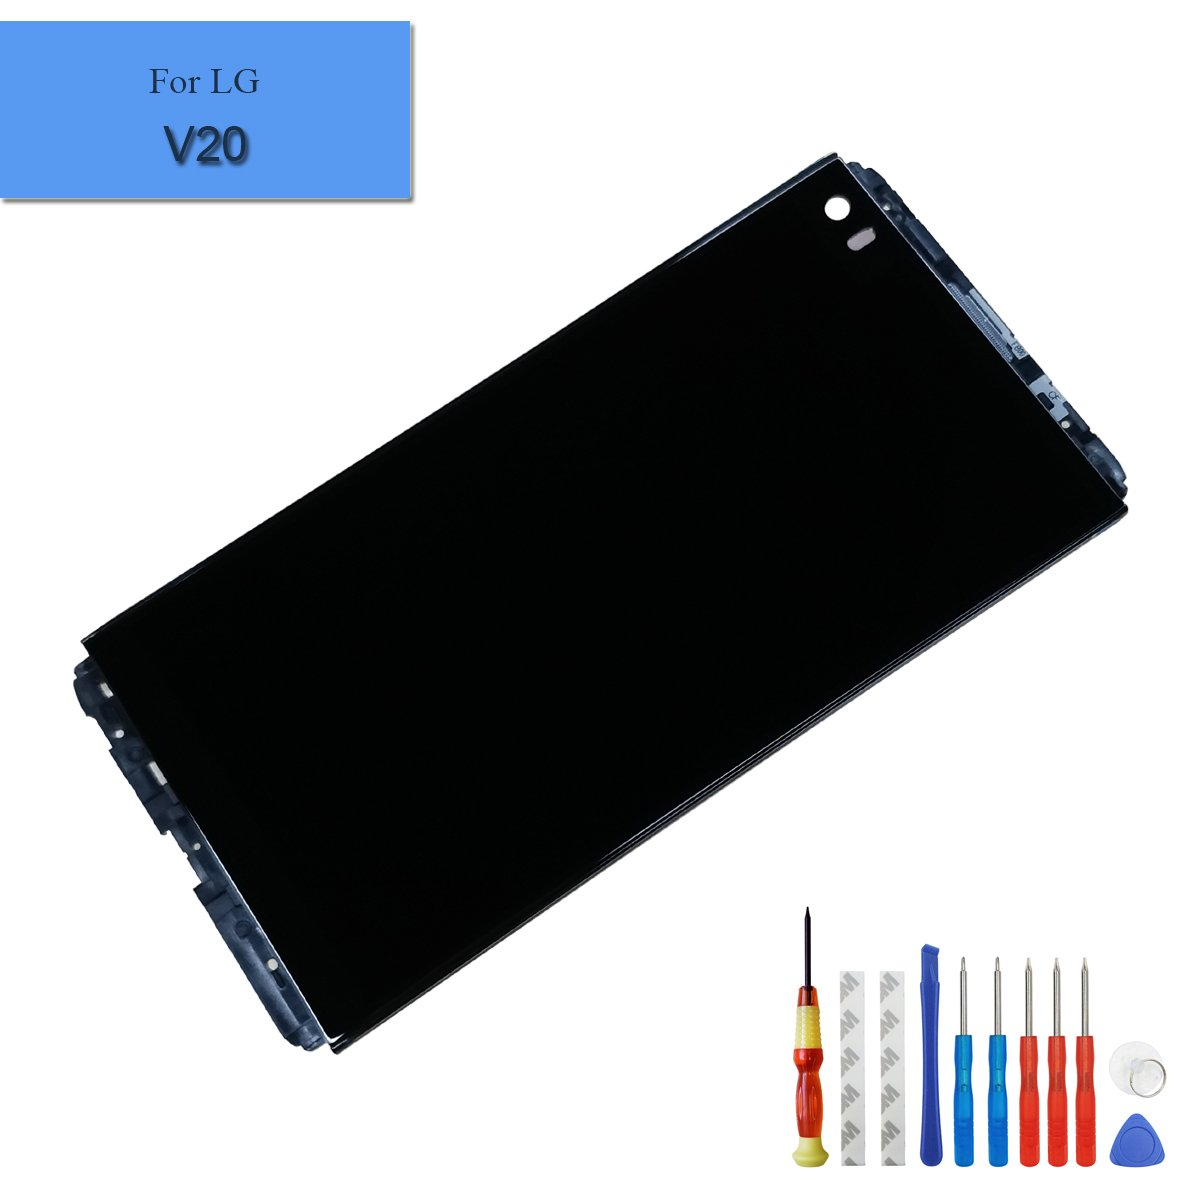 New LCD with Frame Replacement Display Compatible with LG V20 LS997 US996 VS995 H990ds H990 V20 H990TR H910 H915 F800L Touch Screen Digitizer + Tools